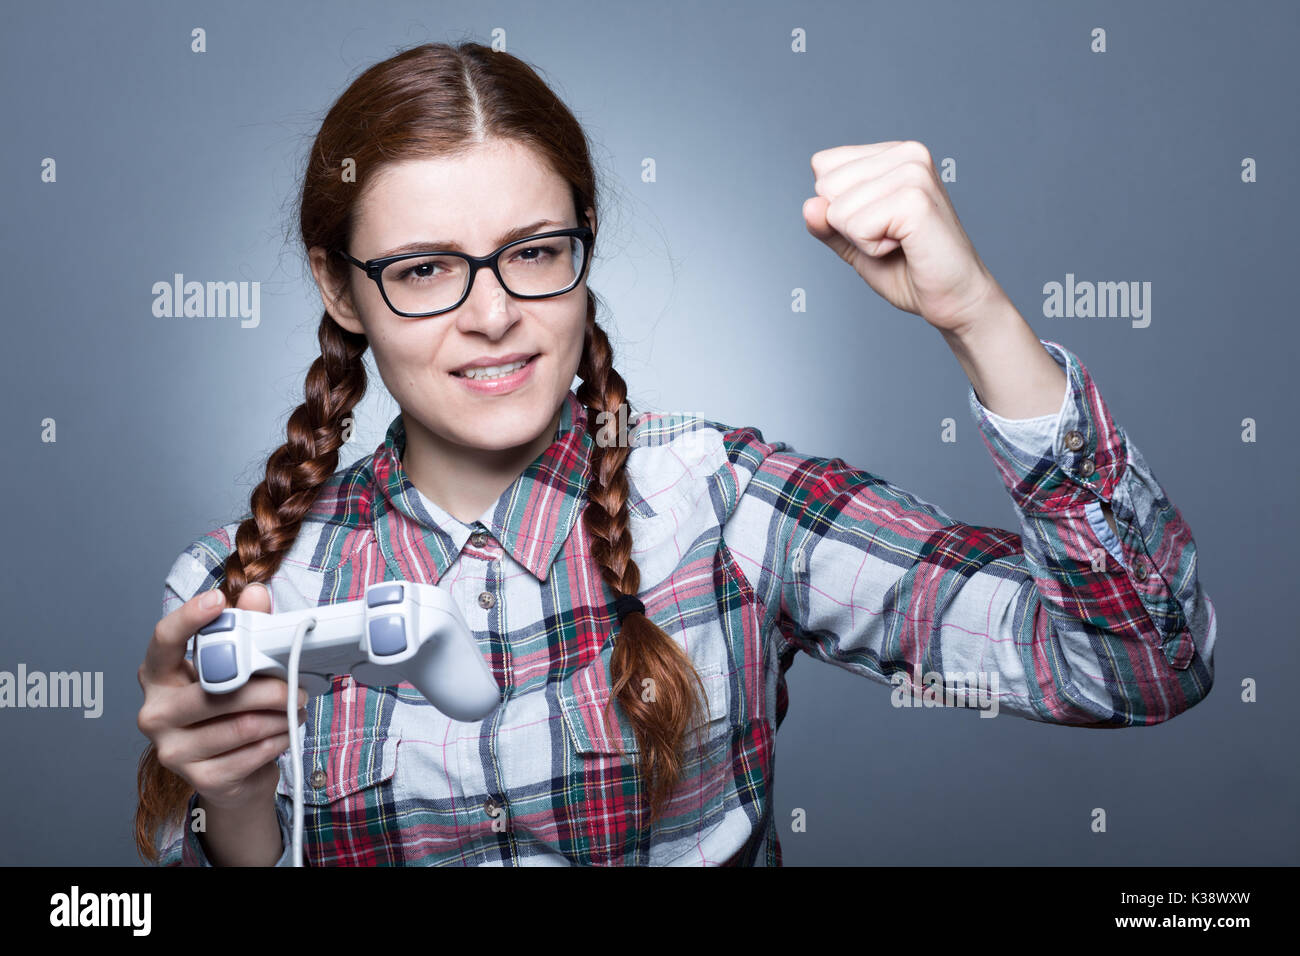 Nerd Woman with Braid Playing Videogames with a Joypad - Stock Image